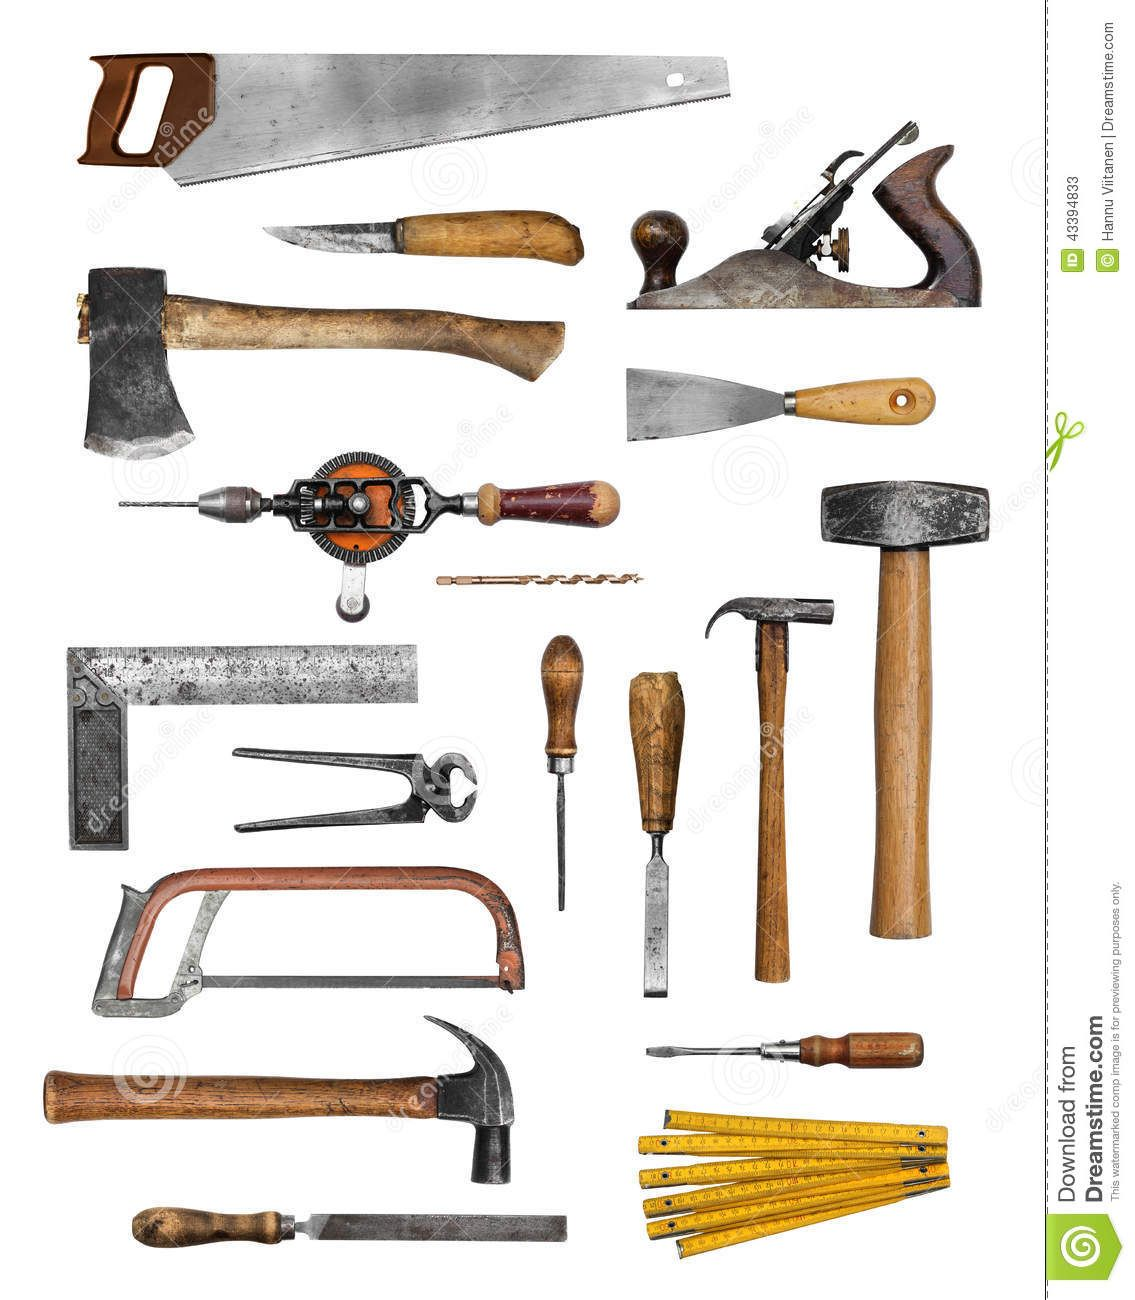 Vintage makers mark hand and chisel clipart clip library library Old Carpenter Hand Tools | Carpenter tools in 2019 ... clip library library